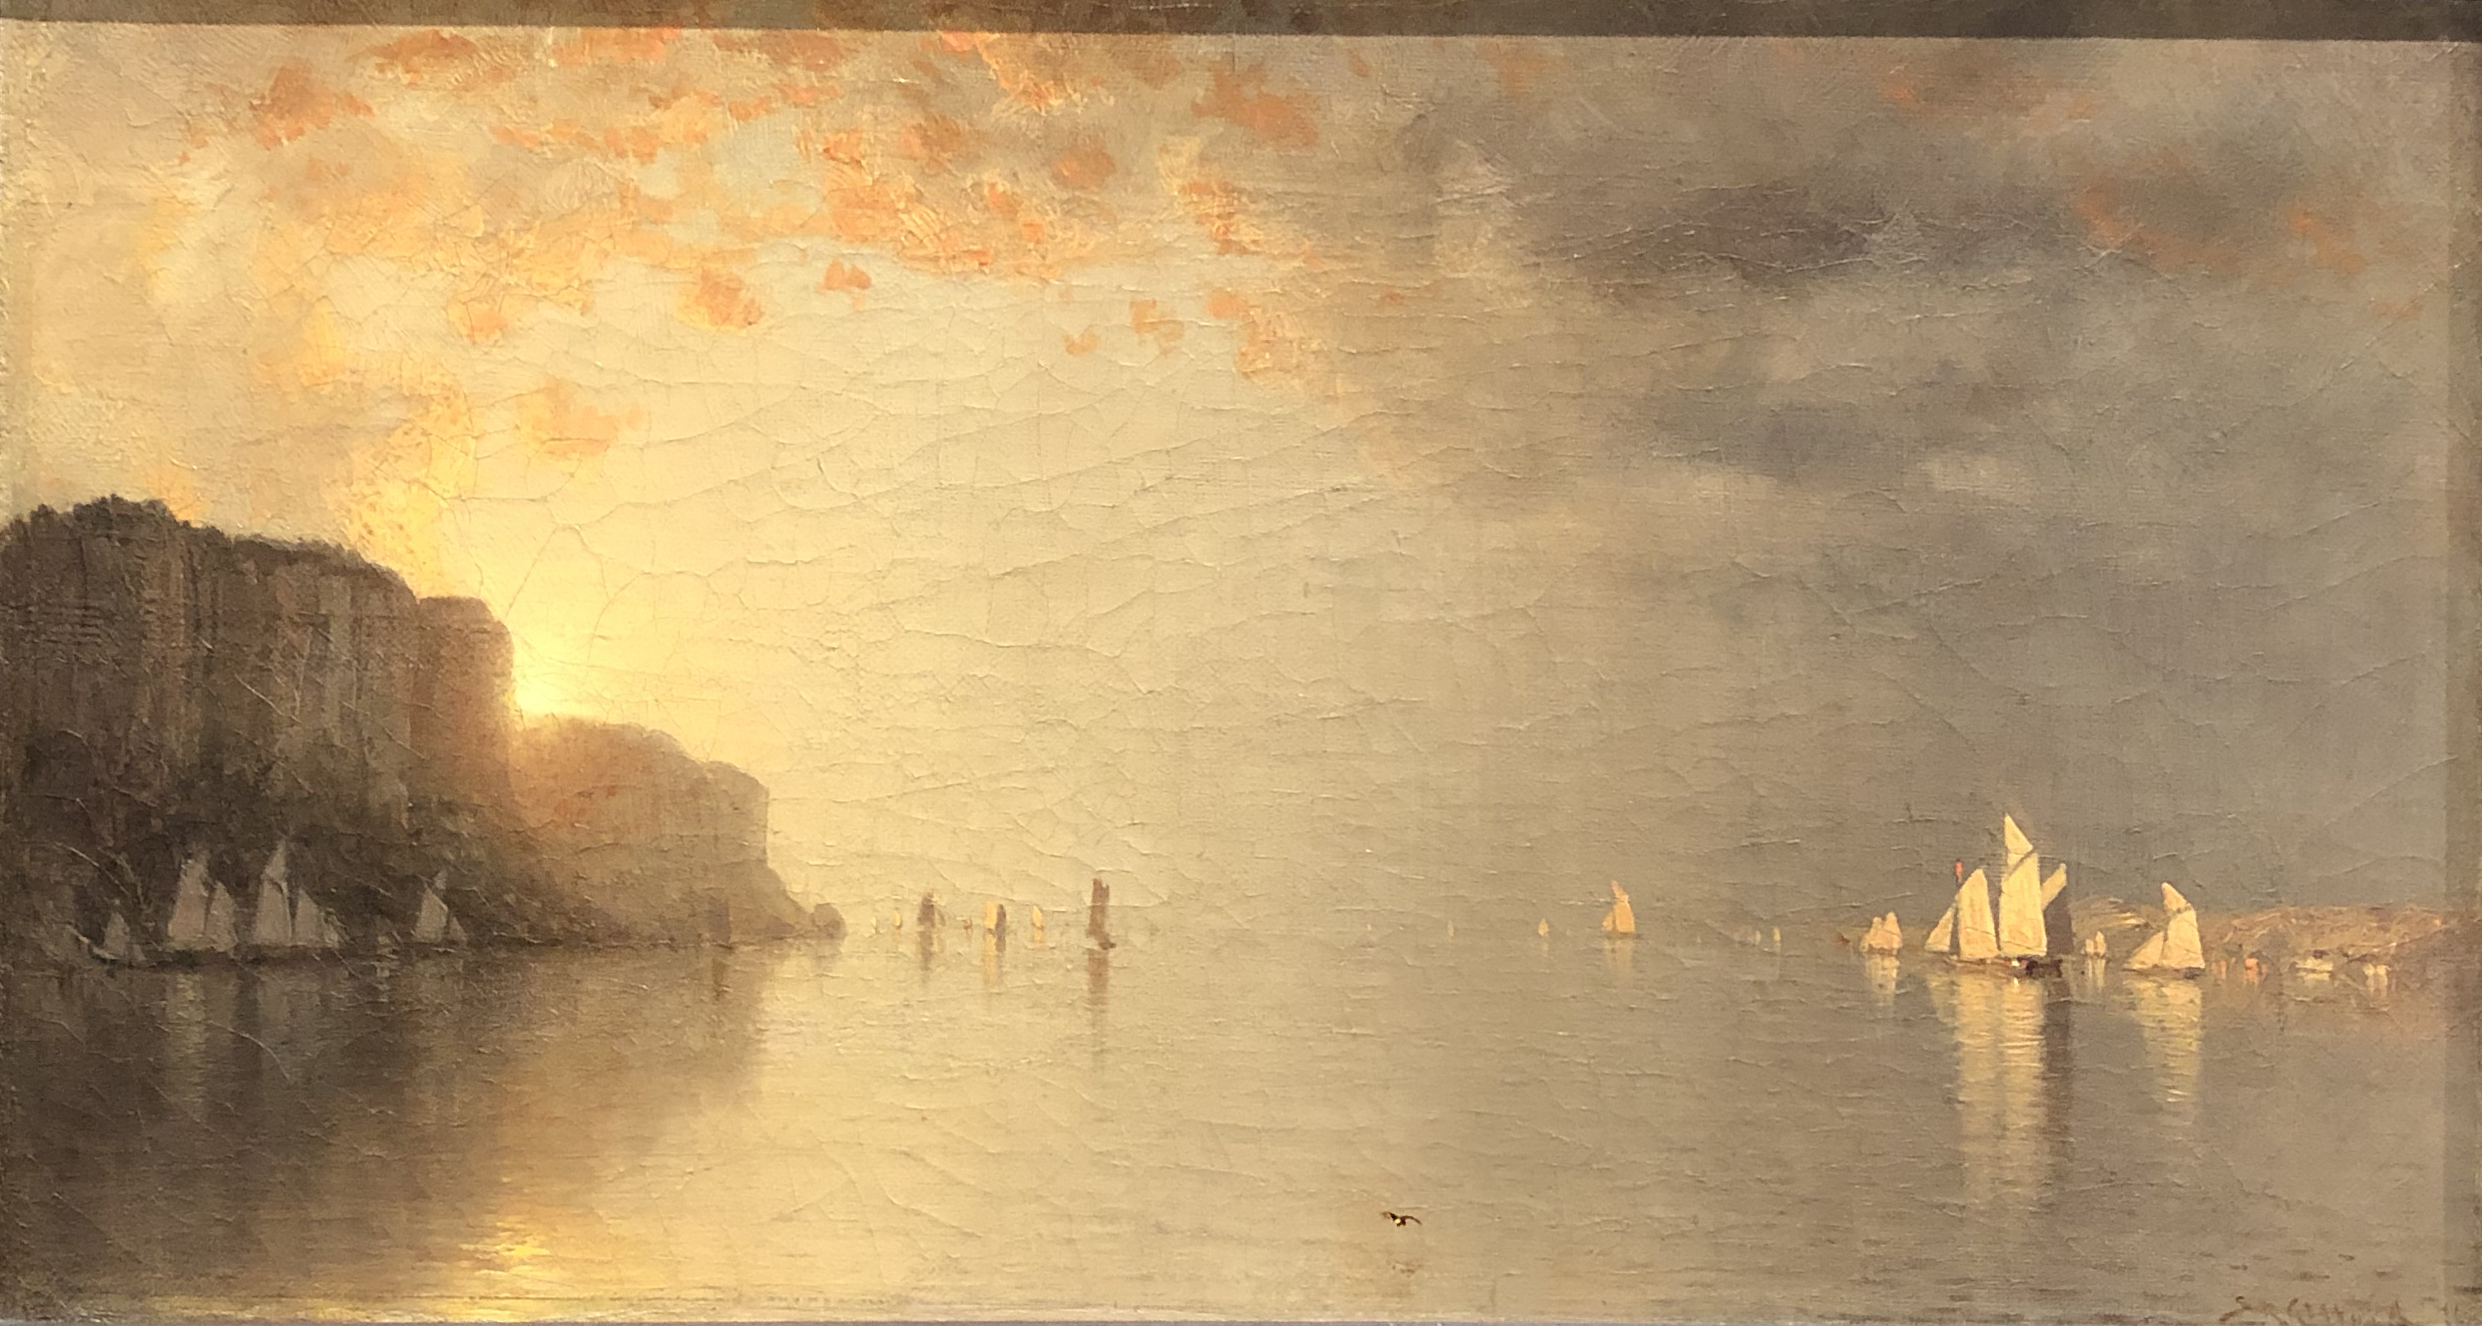 Sunset on the Hudson, Sanford R. Gifford